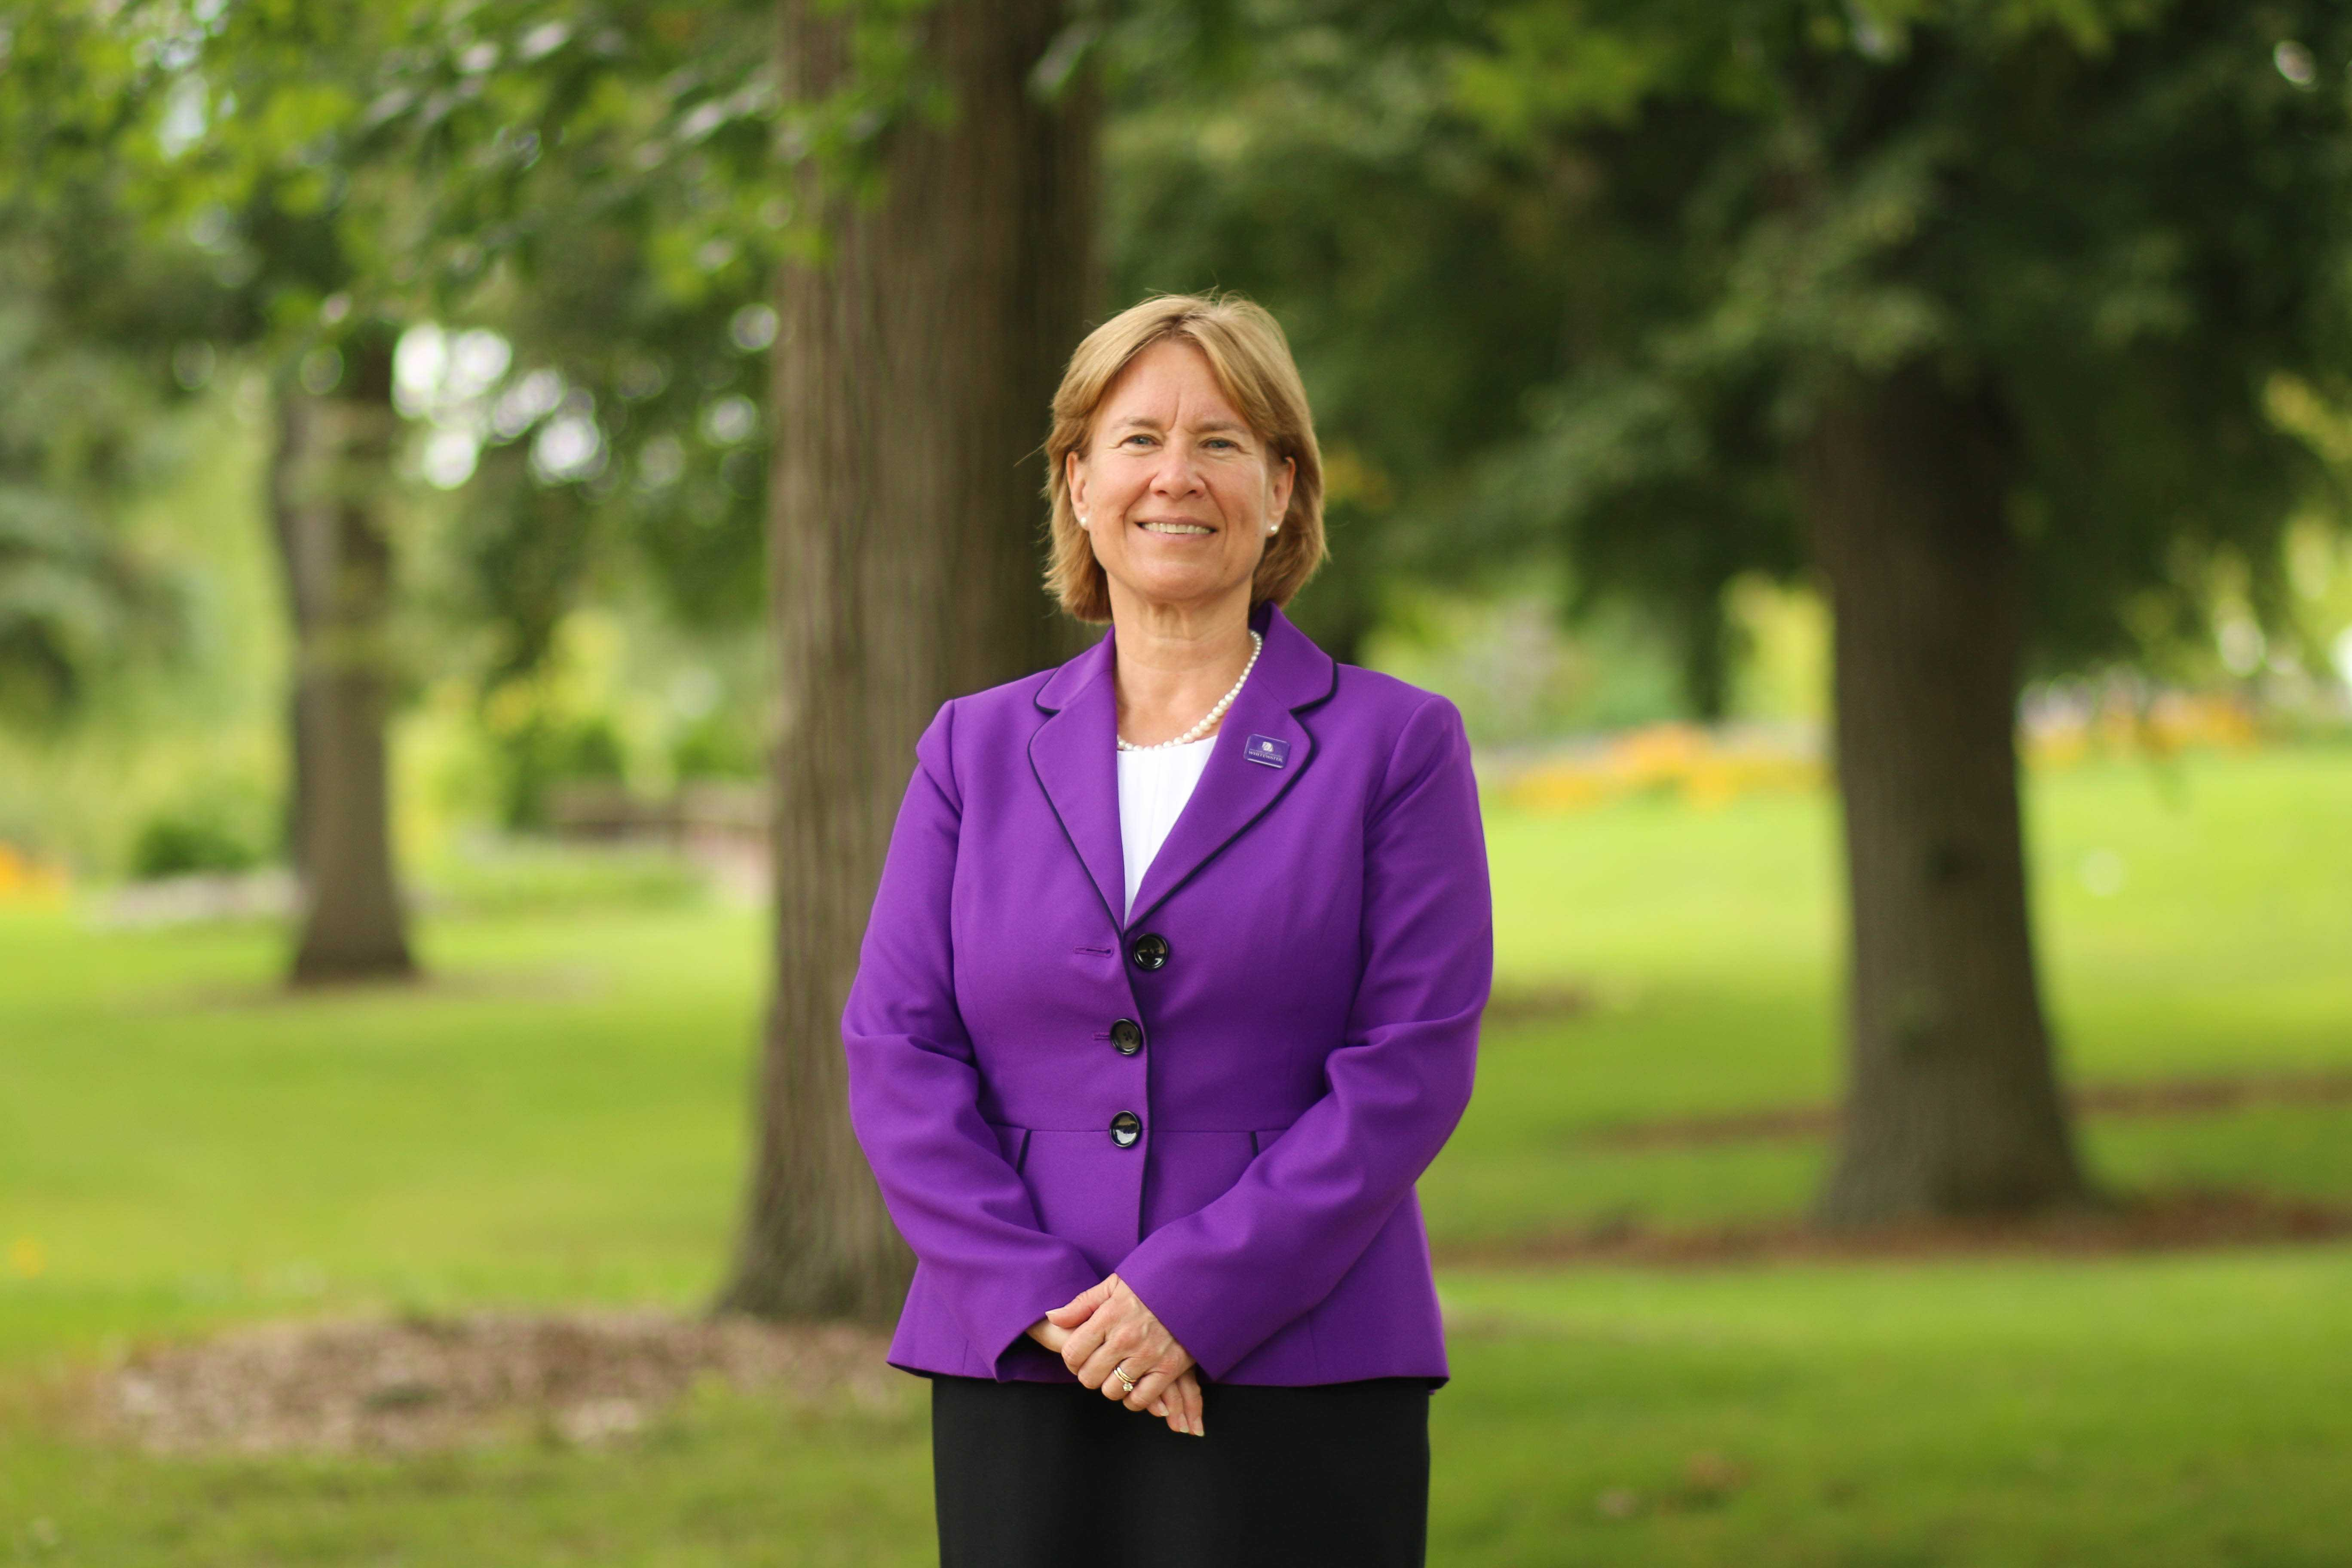 Beverly Kopper, who became UW-Whitewater's 16th Chancellor last summer, has seen both highs and lows for the university in the past year. photo by Kimberly Wethal